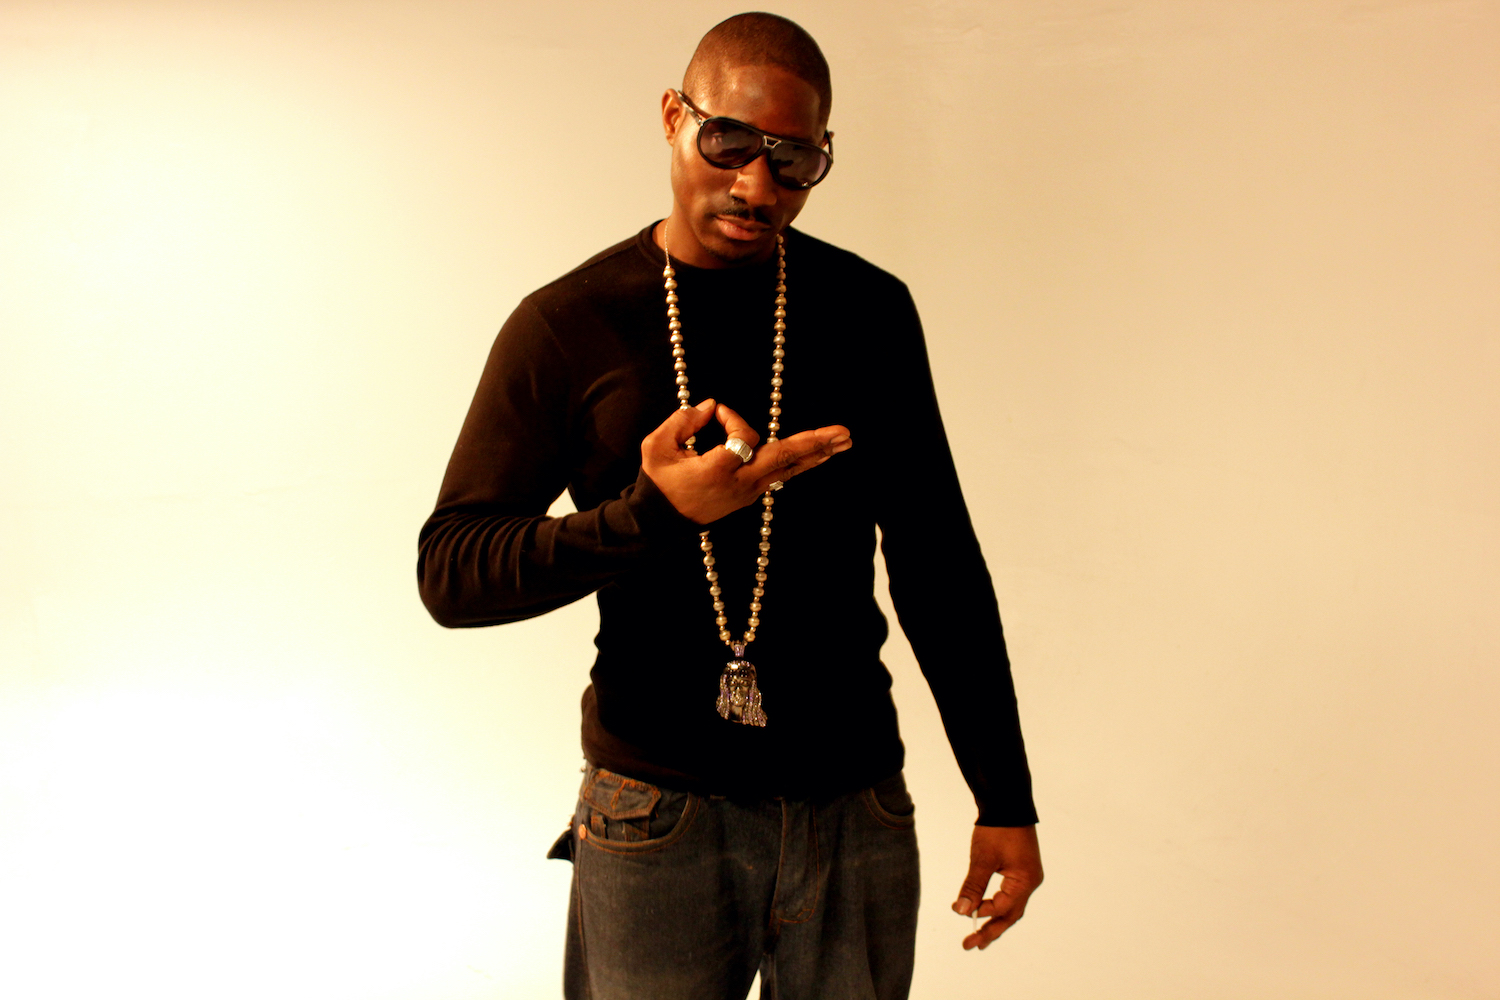 Professional Photography Black Man In Black Shirt Jeans Sunglasses And Platinum Chains Standing On White Studio Backdrop